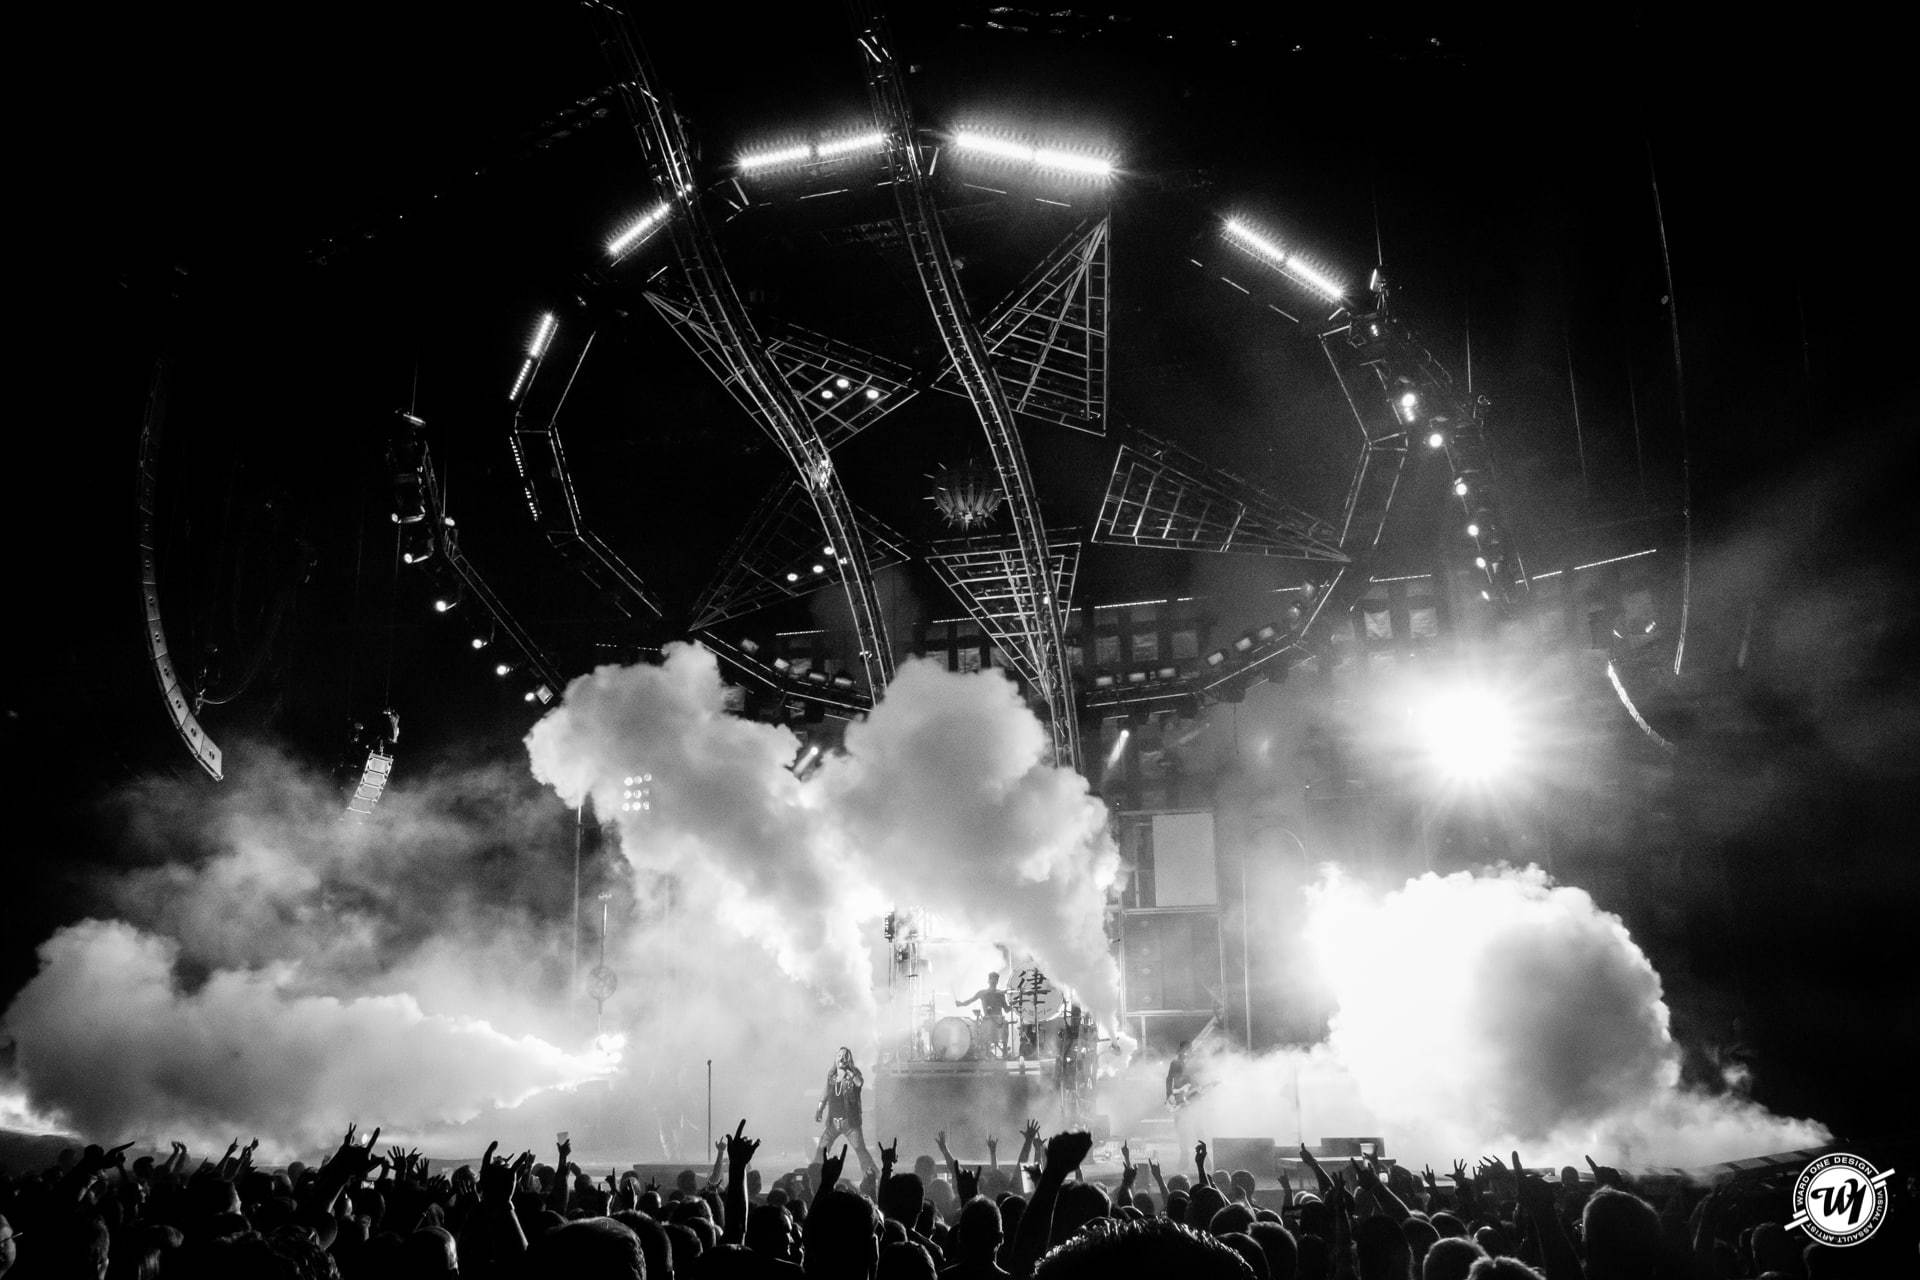 Motley Crue The Final Tour Recap and Photos from Chicago, August 8th, 2014 by Ward 1 Design